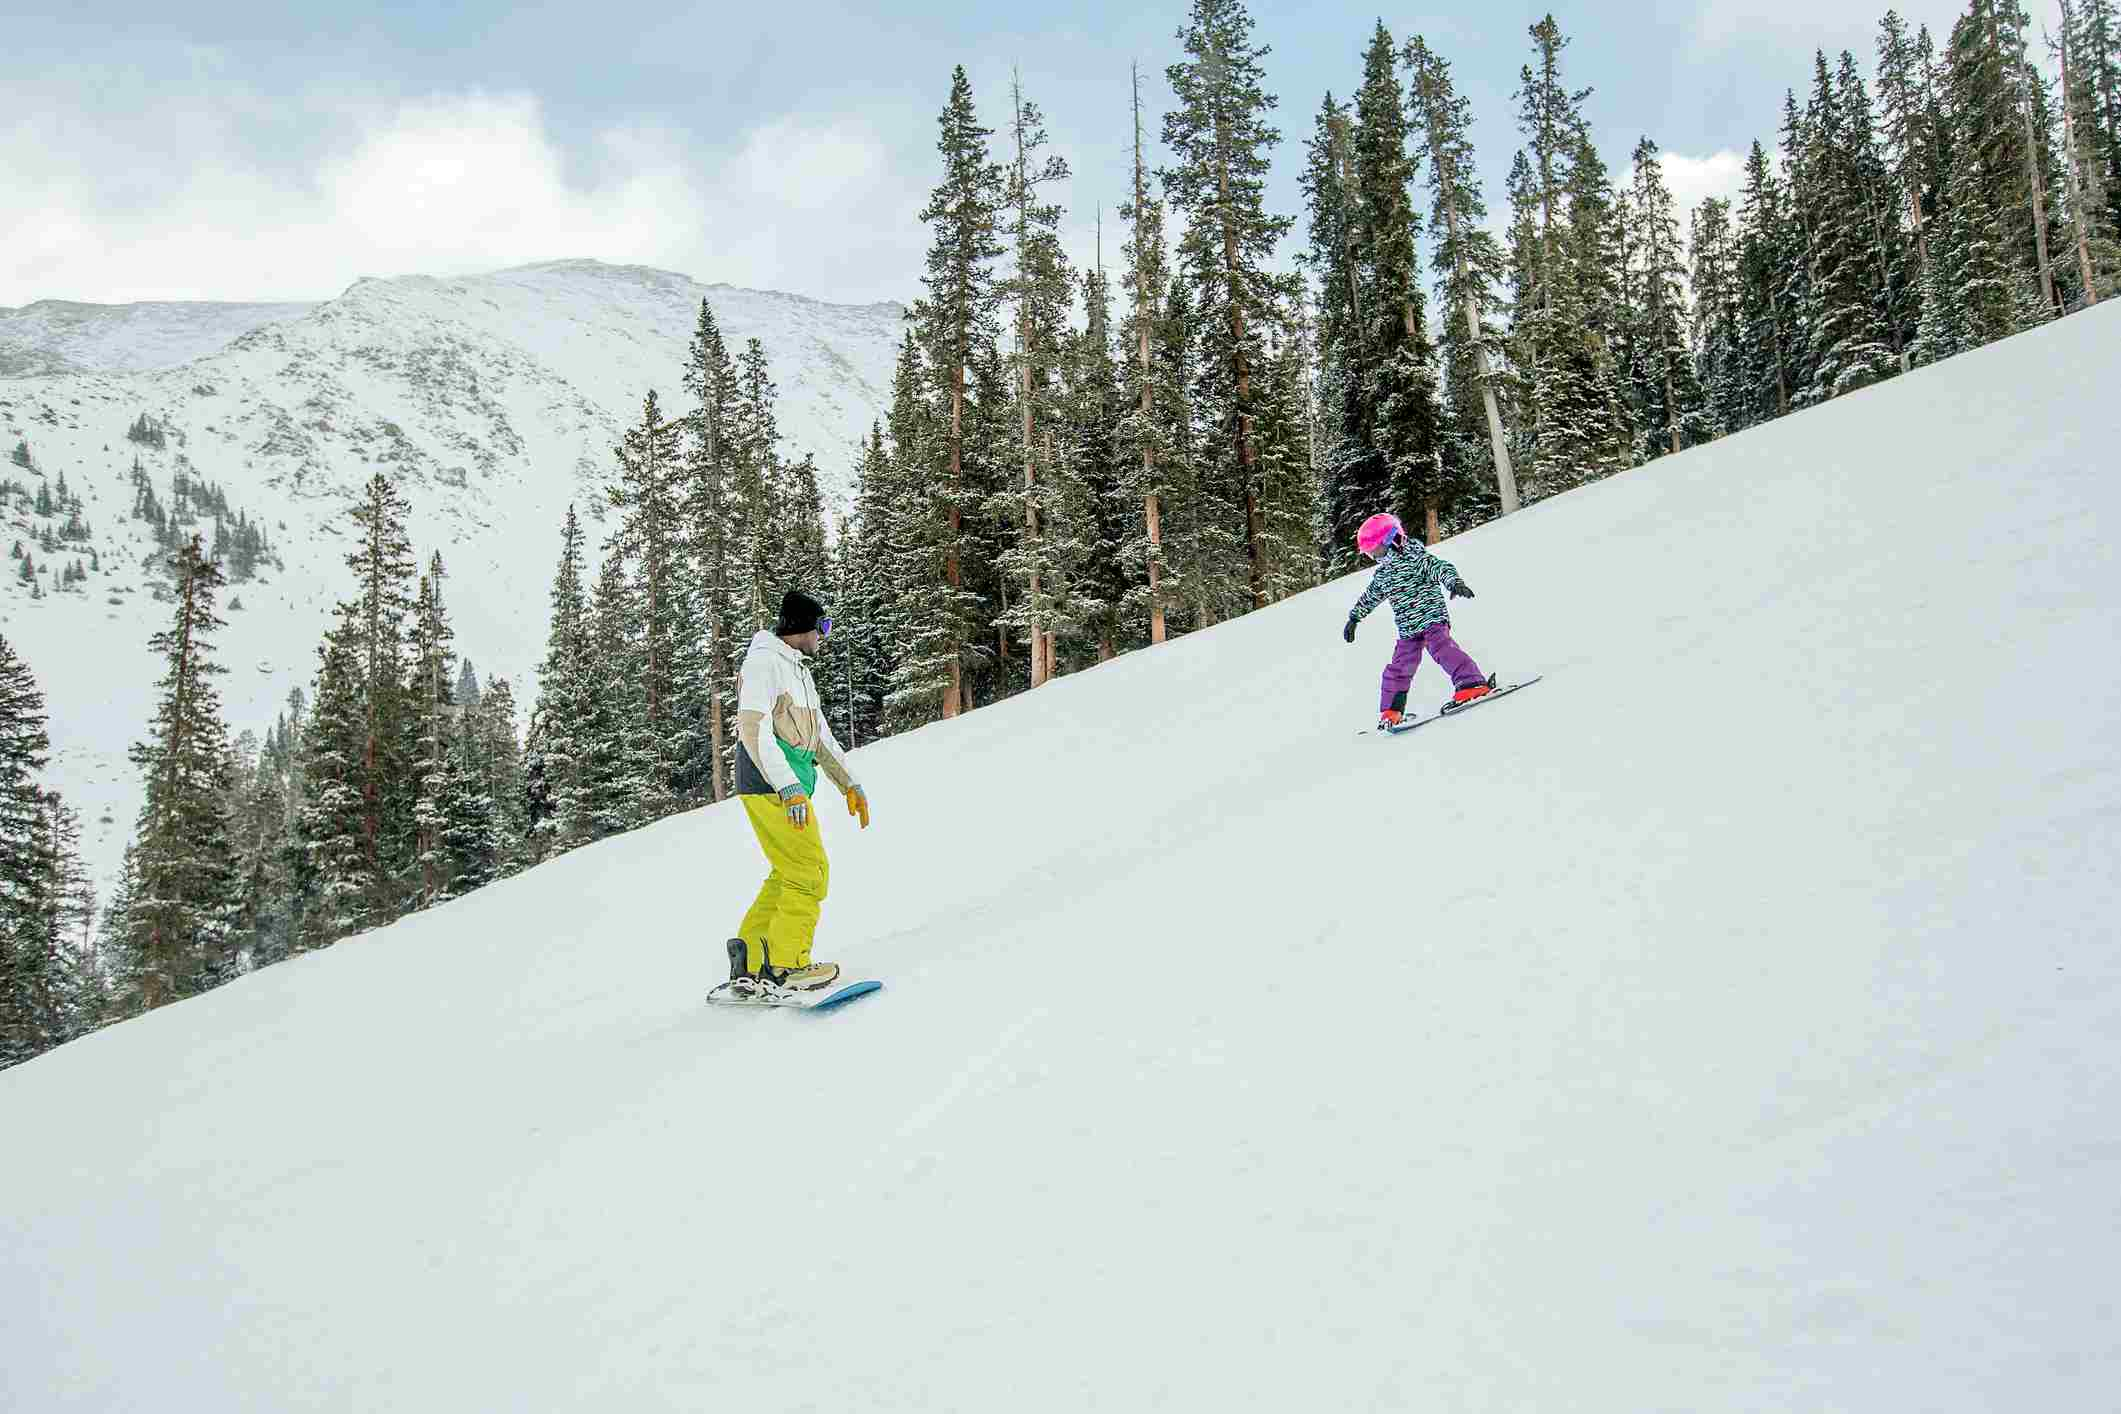 US Ski Resorts Where Kids Ski and Snowboard for Free Keystone Colorado Map Of East Side on map of san isabel colorado, map of cascade colorado, map of cameron pass colorado, map of stratton colorado, map of woodmoor colorado, map of vail, map of eldora colorado, map of san miguel county colorado, map of gunbarrel colorado, map of silver plume colorado, map of copper mountain colorado, map of colorado rv parks, map of lake granby colorado, map of blue mesa, map of cherry hills village colorado, map of battlement mesa colorado, map of arapahoe colorado, map of keenesburg colorado, map of panama city beach florida, map of laporte colorado,